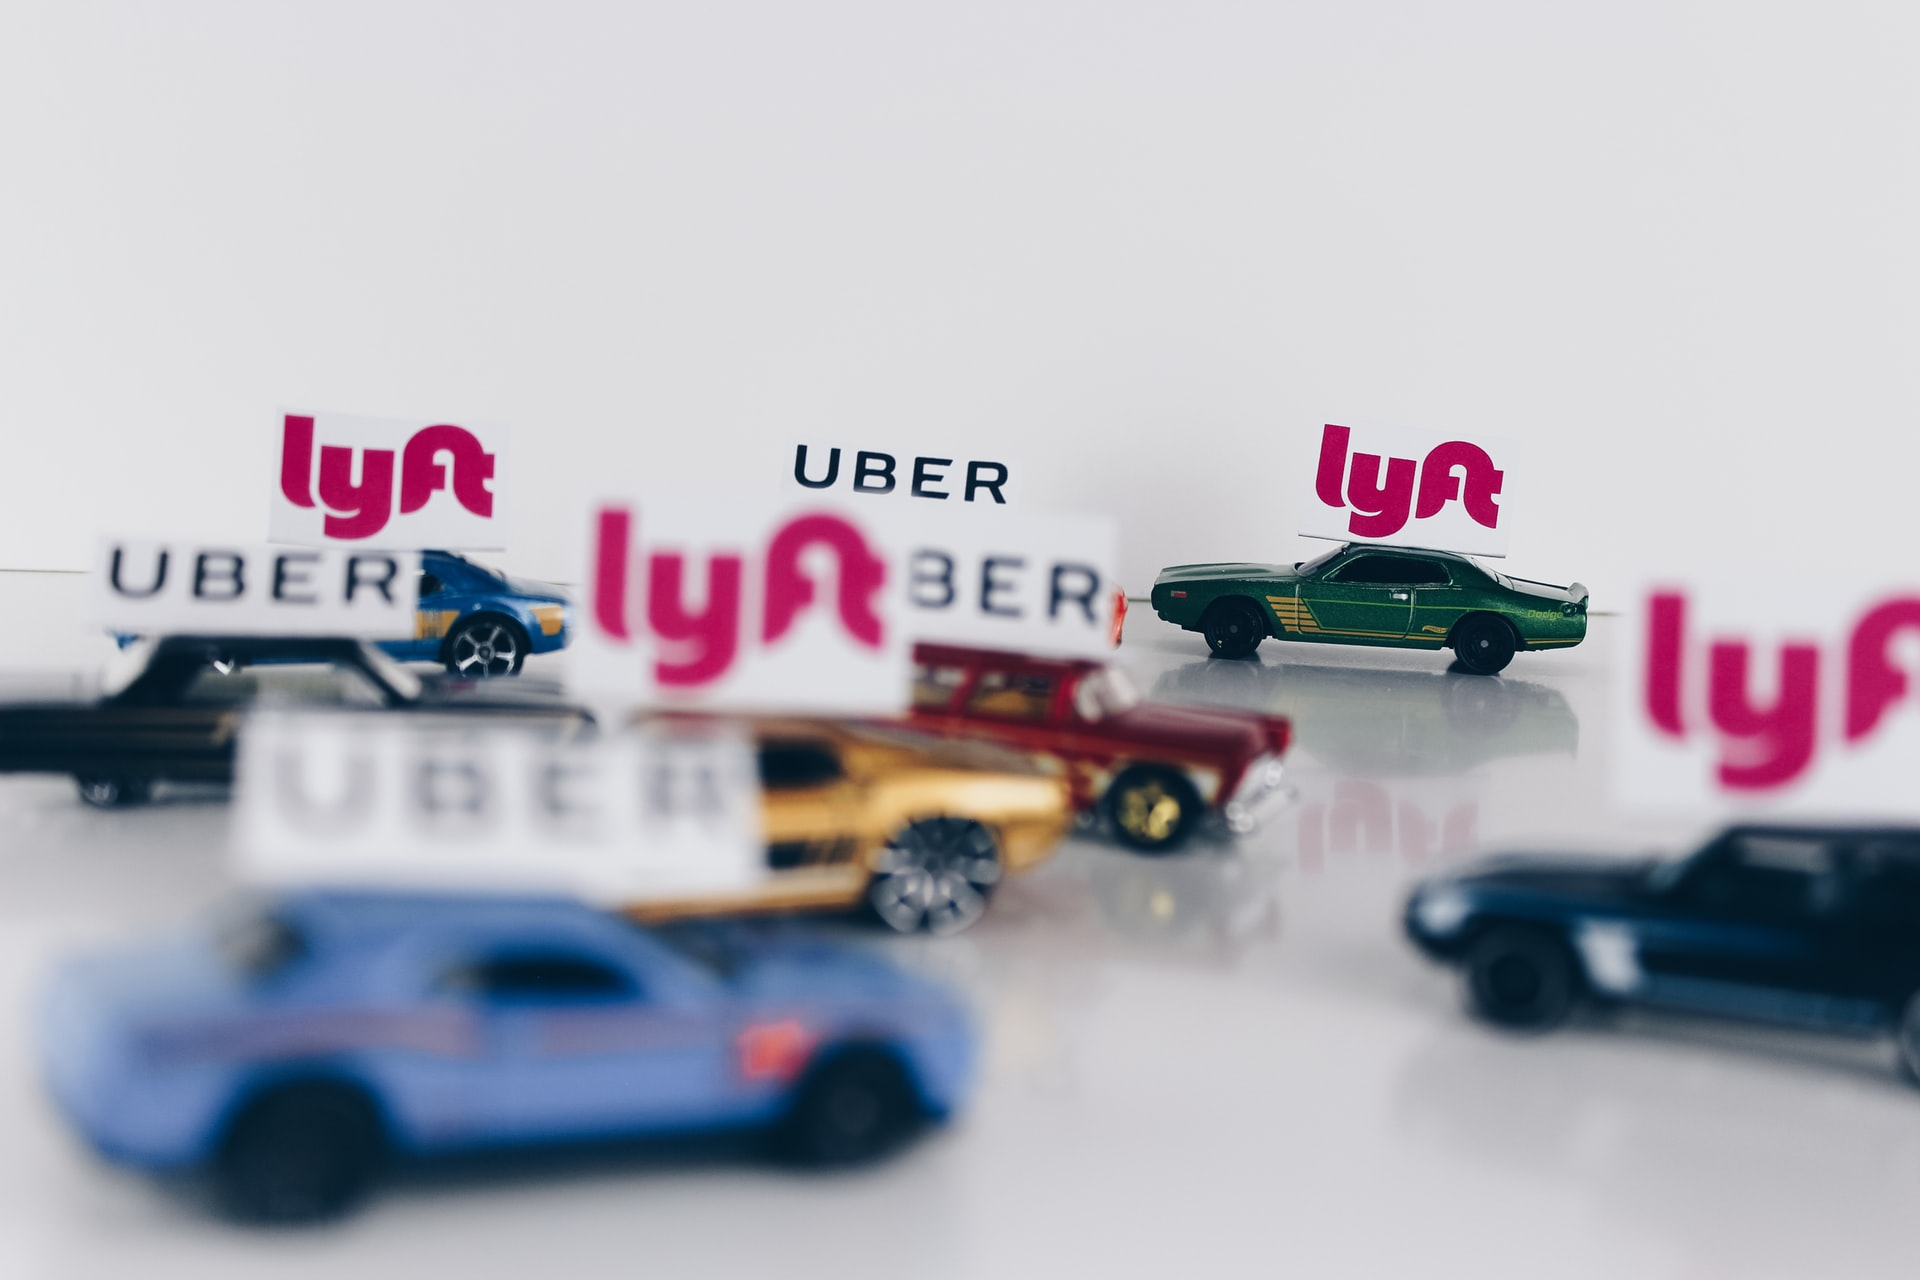 How does Uber work?